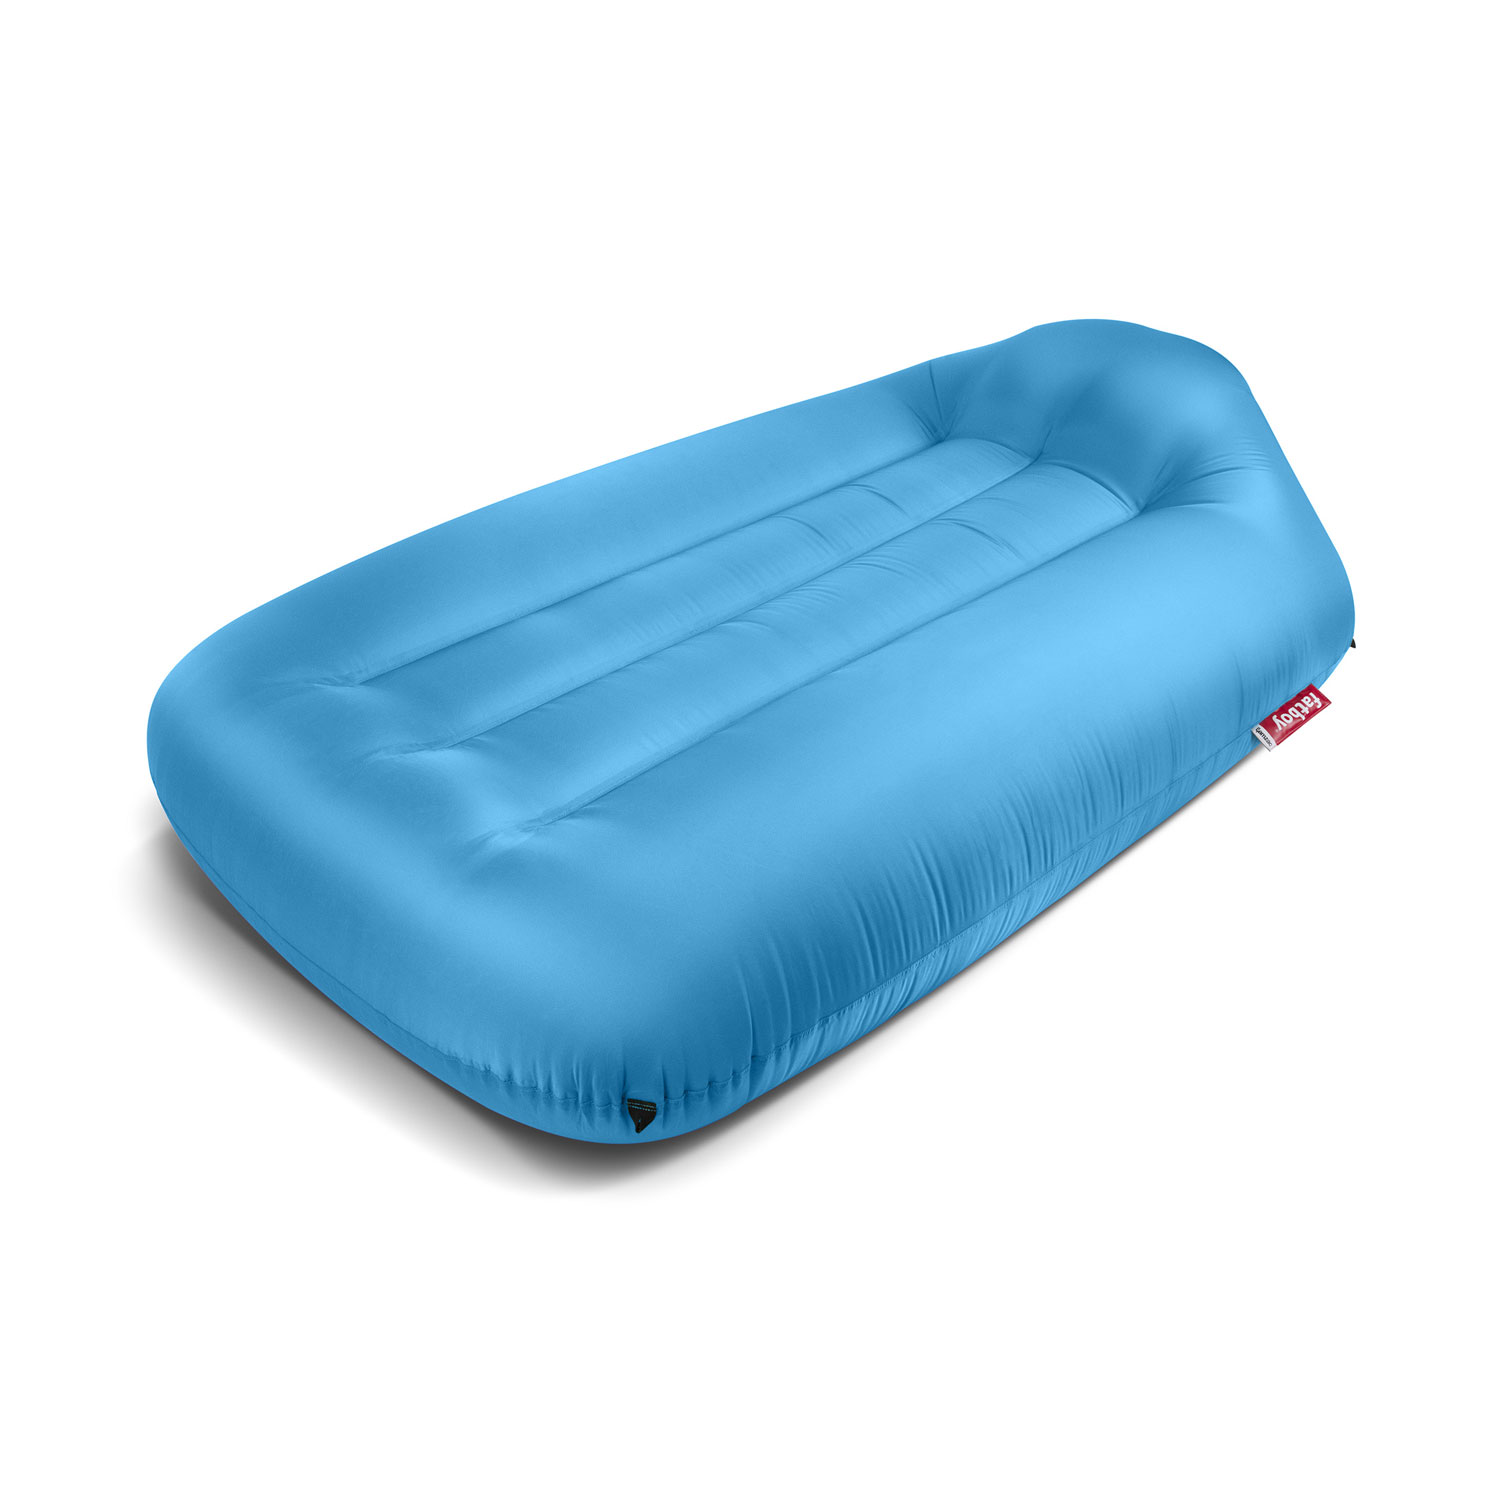 bed home pump mattresses sleeping bw camping bestway mats itm inflatable s ra beds air single